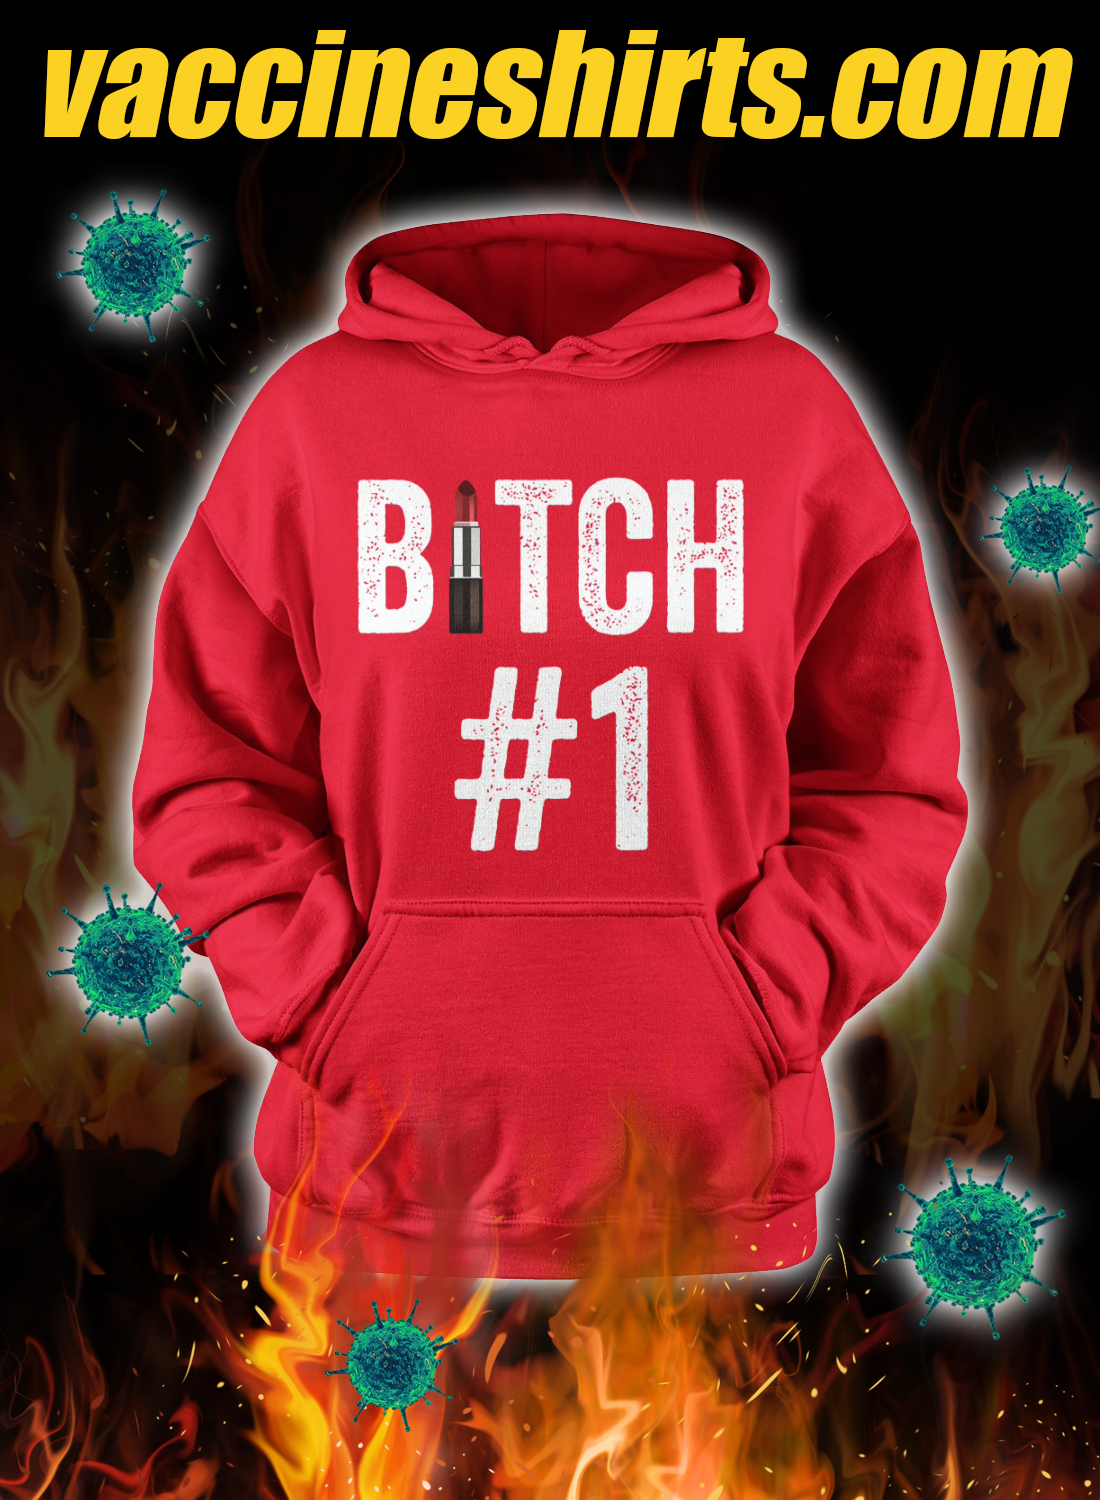 Bitch #1 Bitch #2 Bitch #3 matching friend hoodie 2